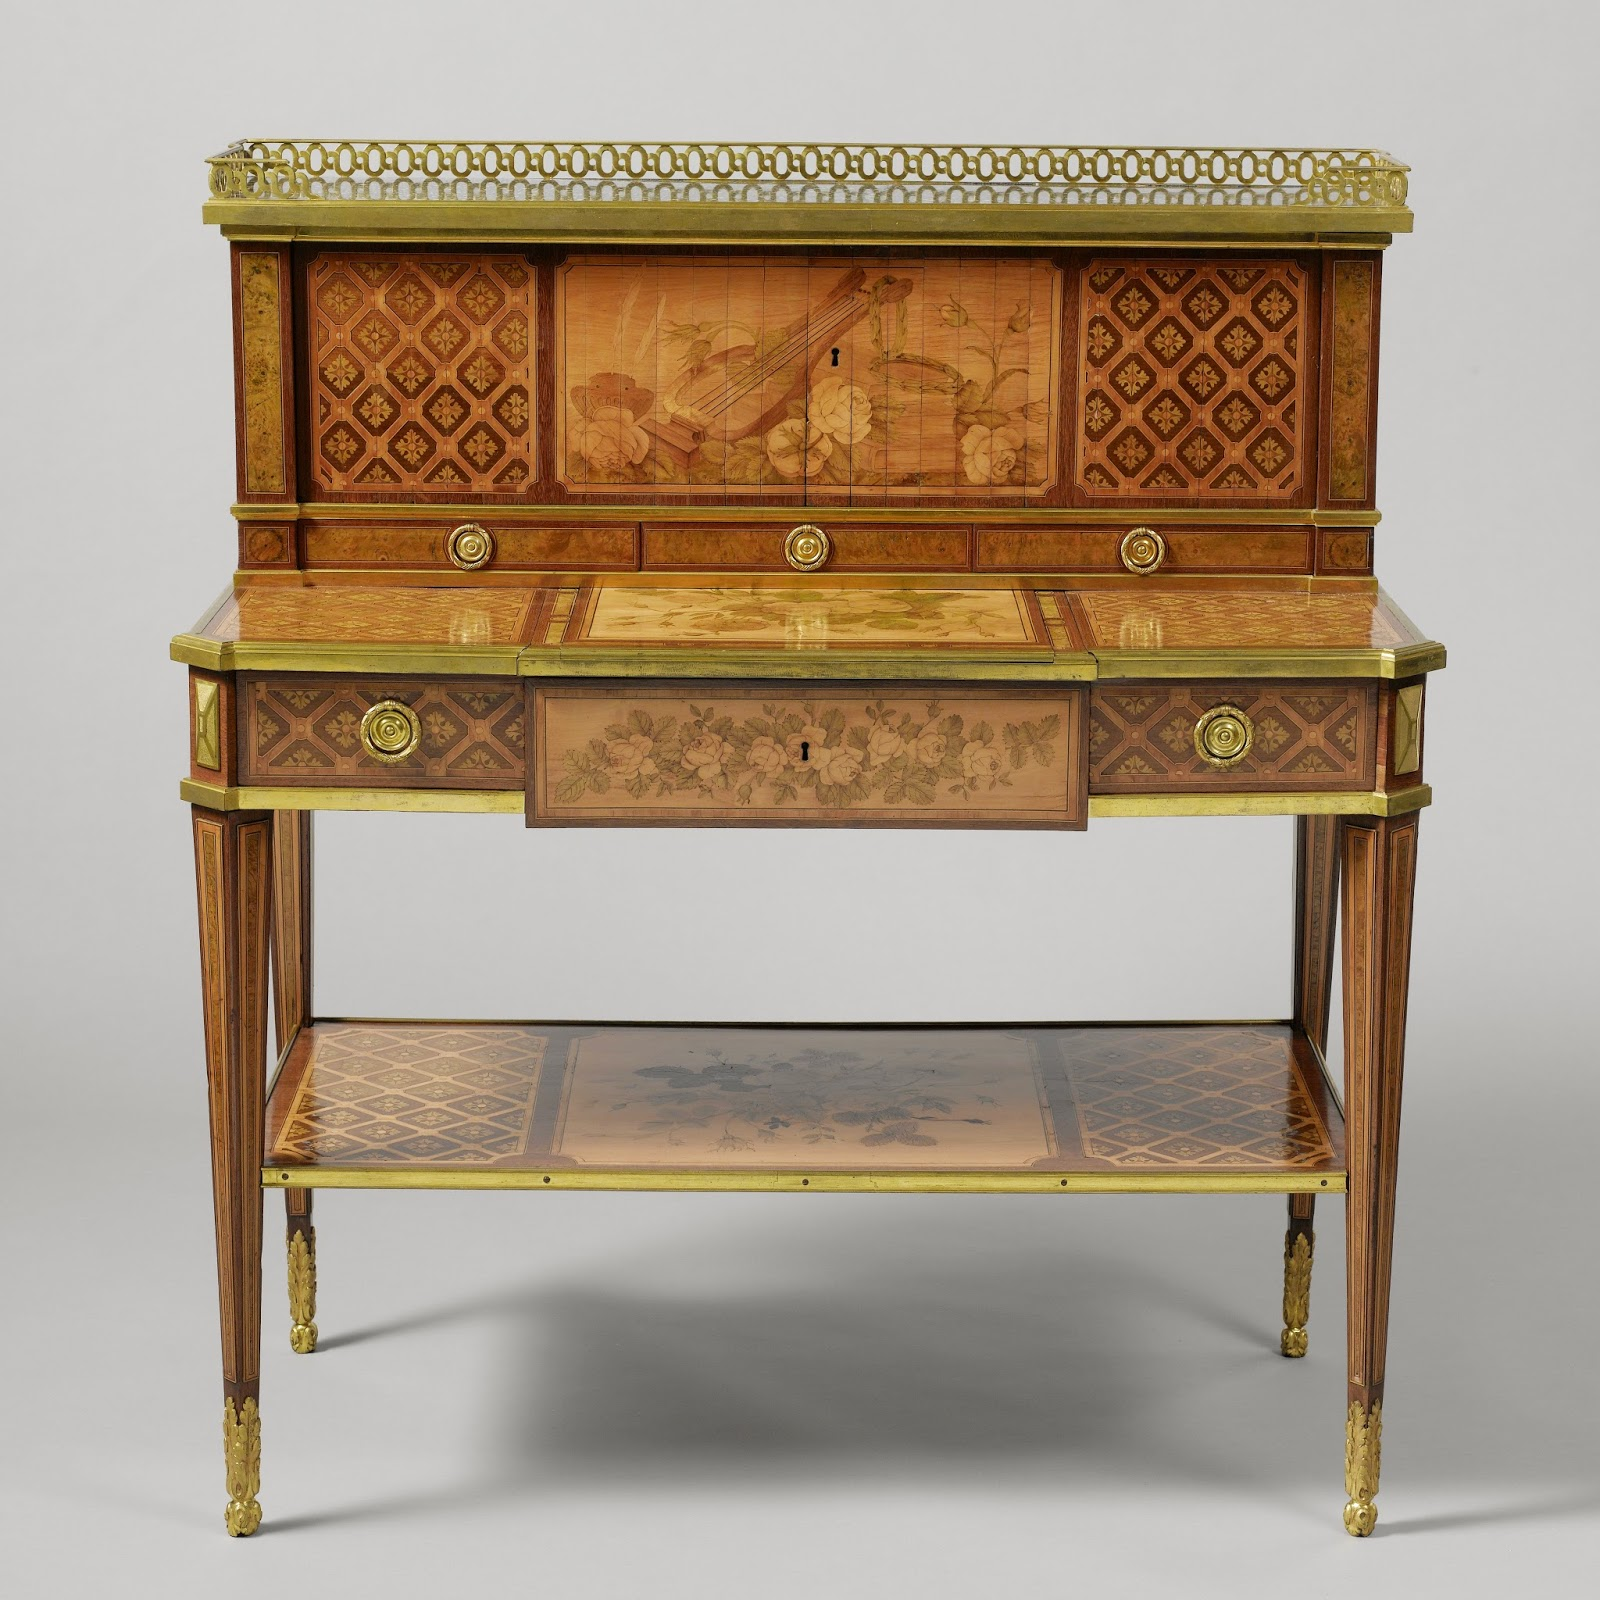 Writing desk with a raised back, Jean-Henri Riesener, c. 1775